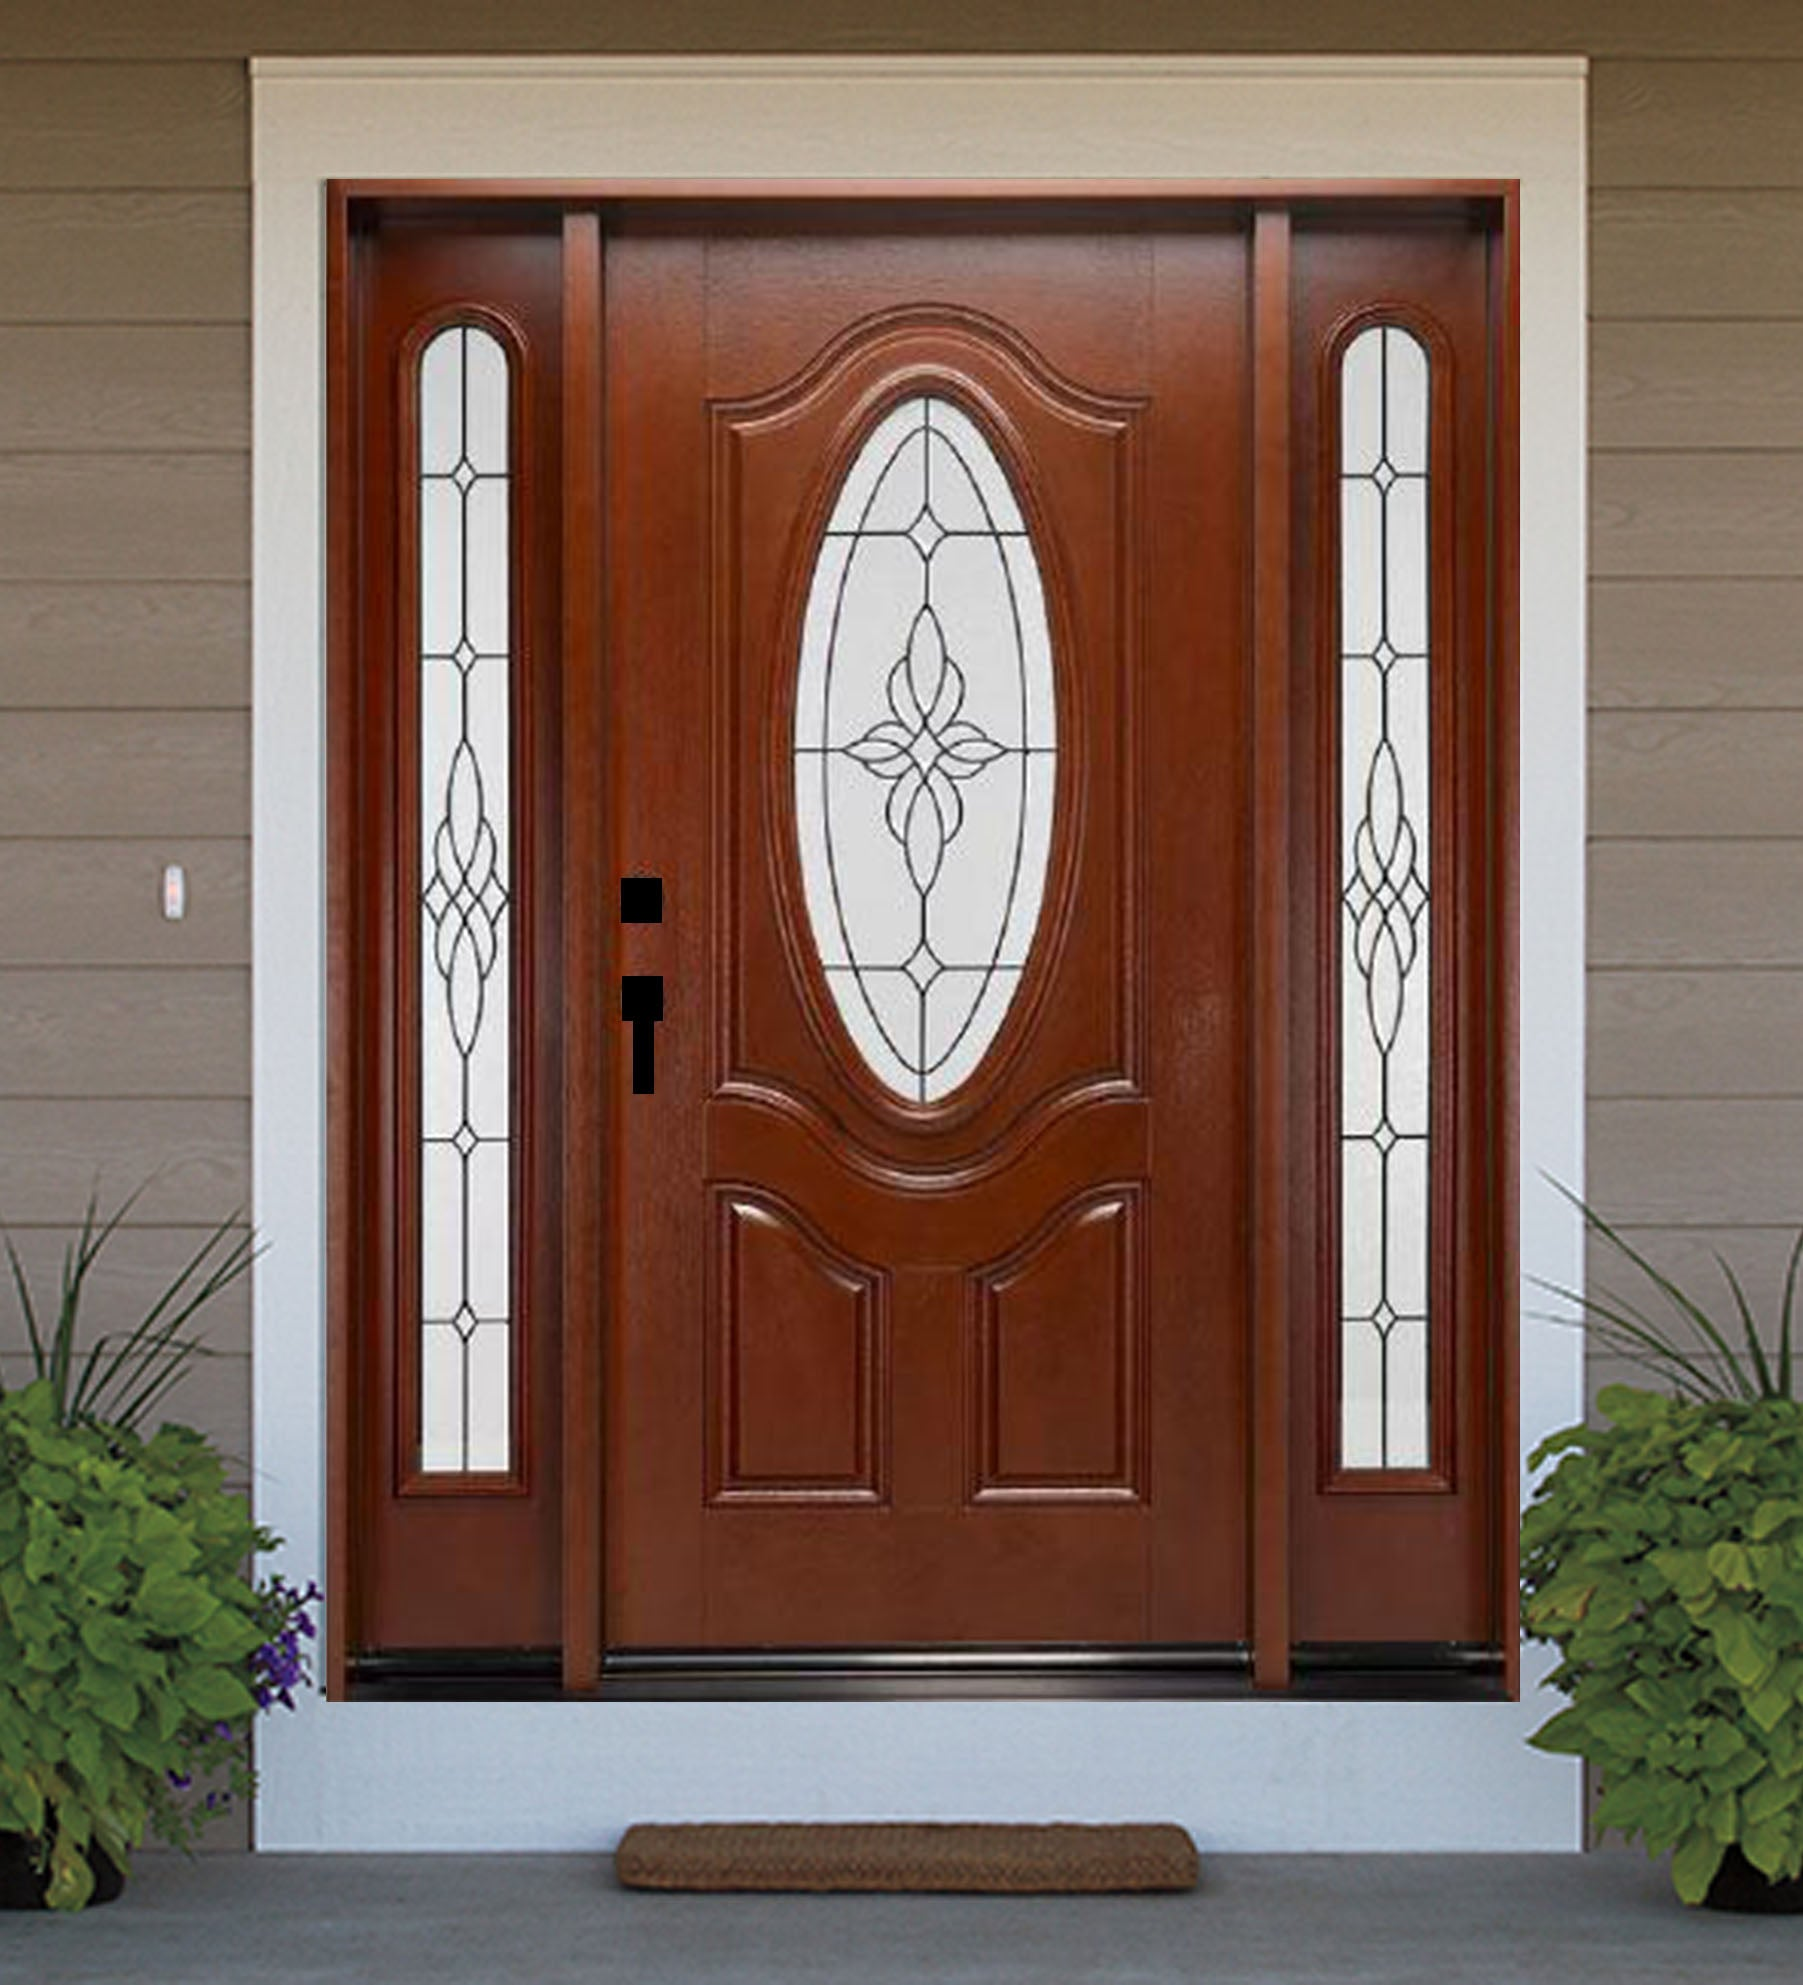 INSTALLED Crystal Single Fiberglass Front Entry Door W/ Fixed Sidelites FM800A-SL STARTING $3,310.99